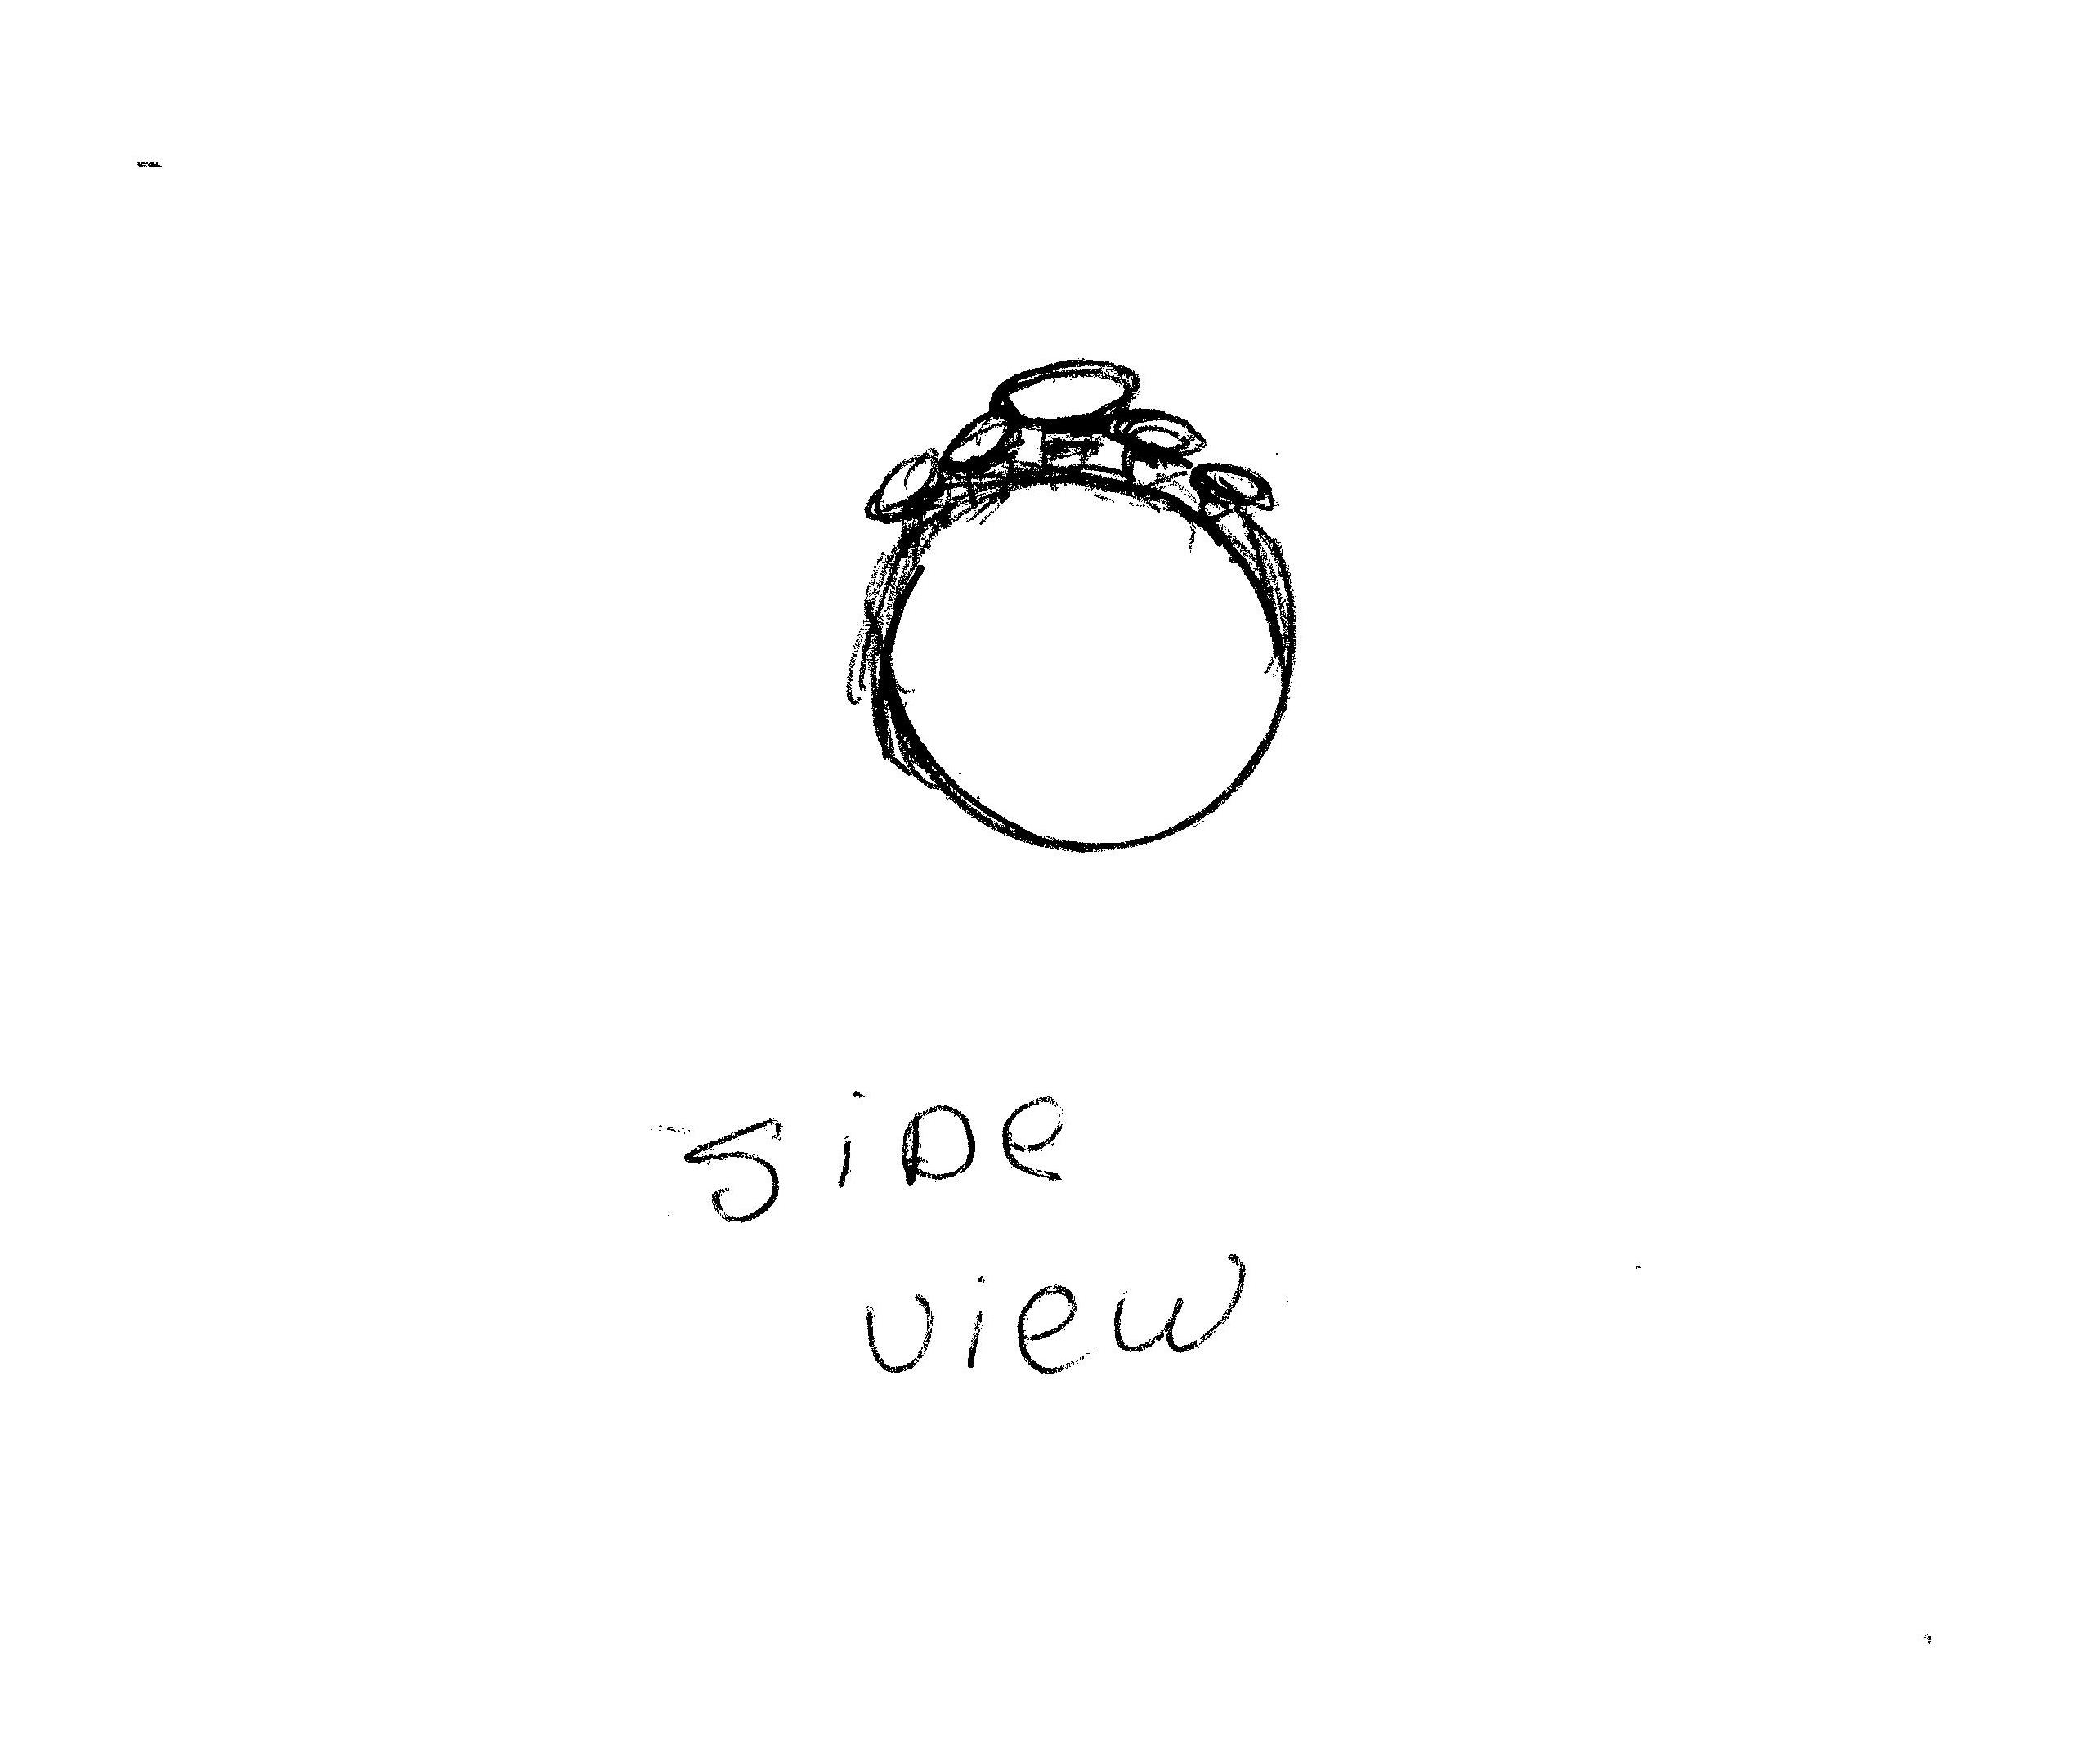 Sketch of Ring.jpg